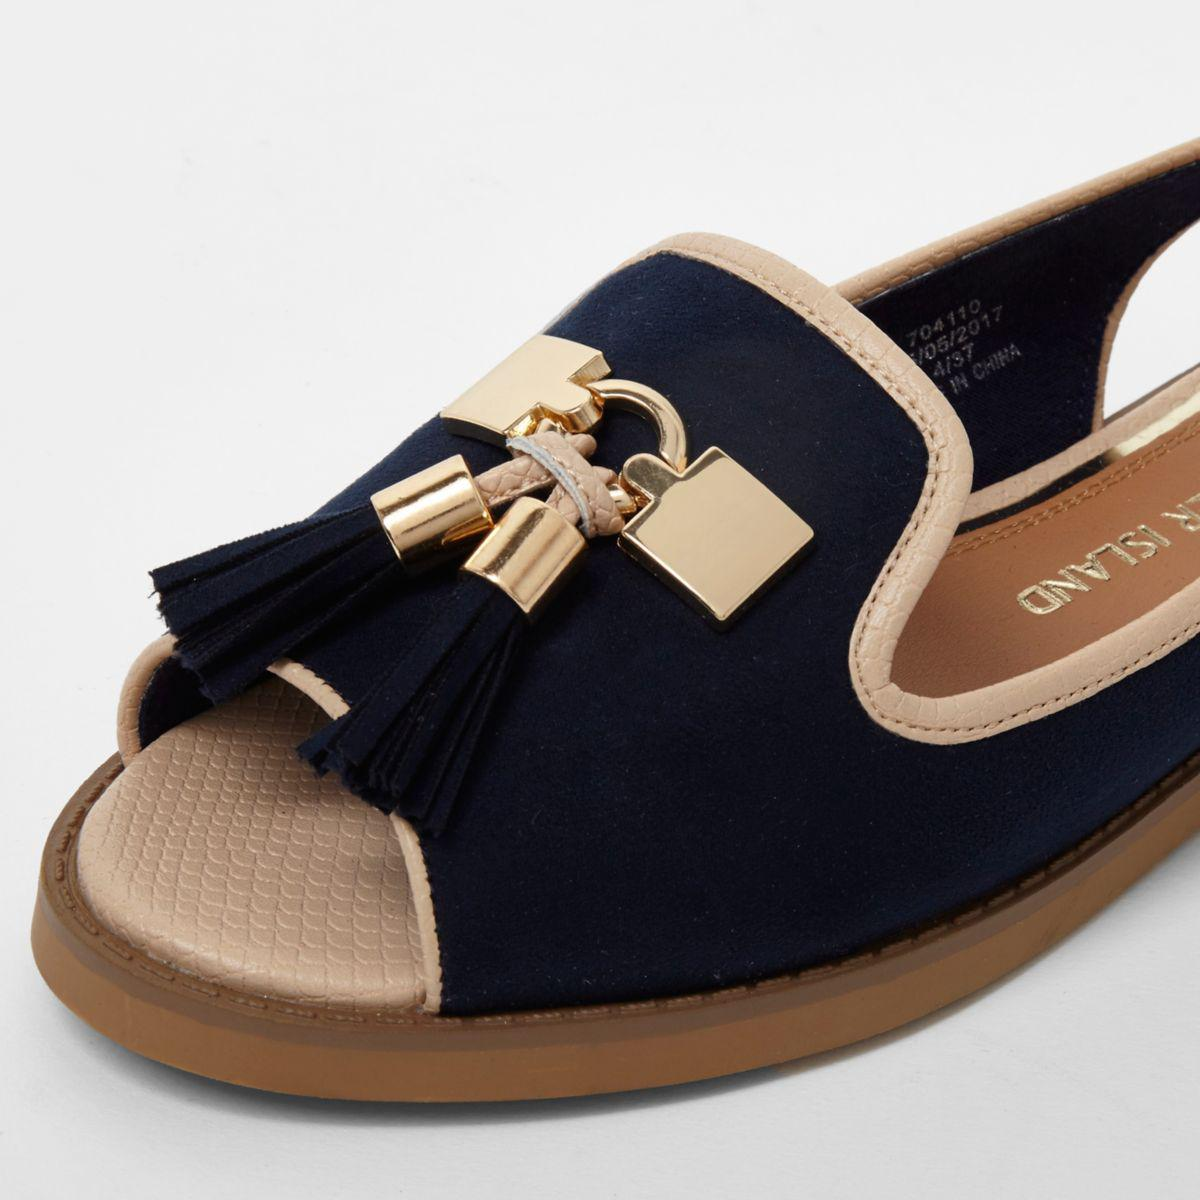 3122362099 River Island Navy Peep Toe Slingback Loafers in Blue - Lyst